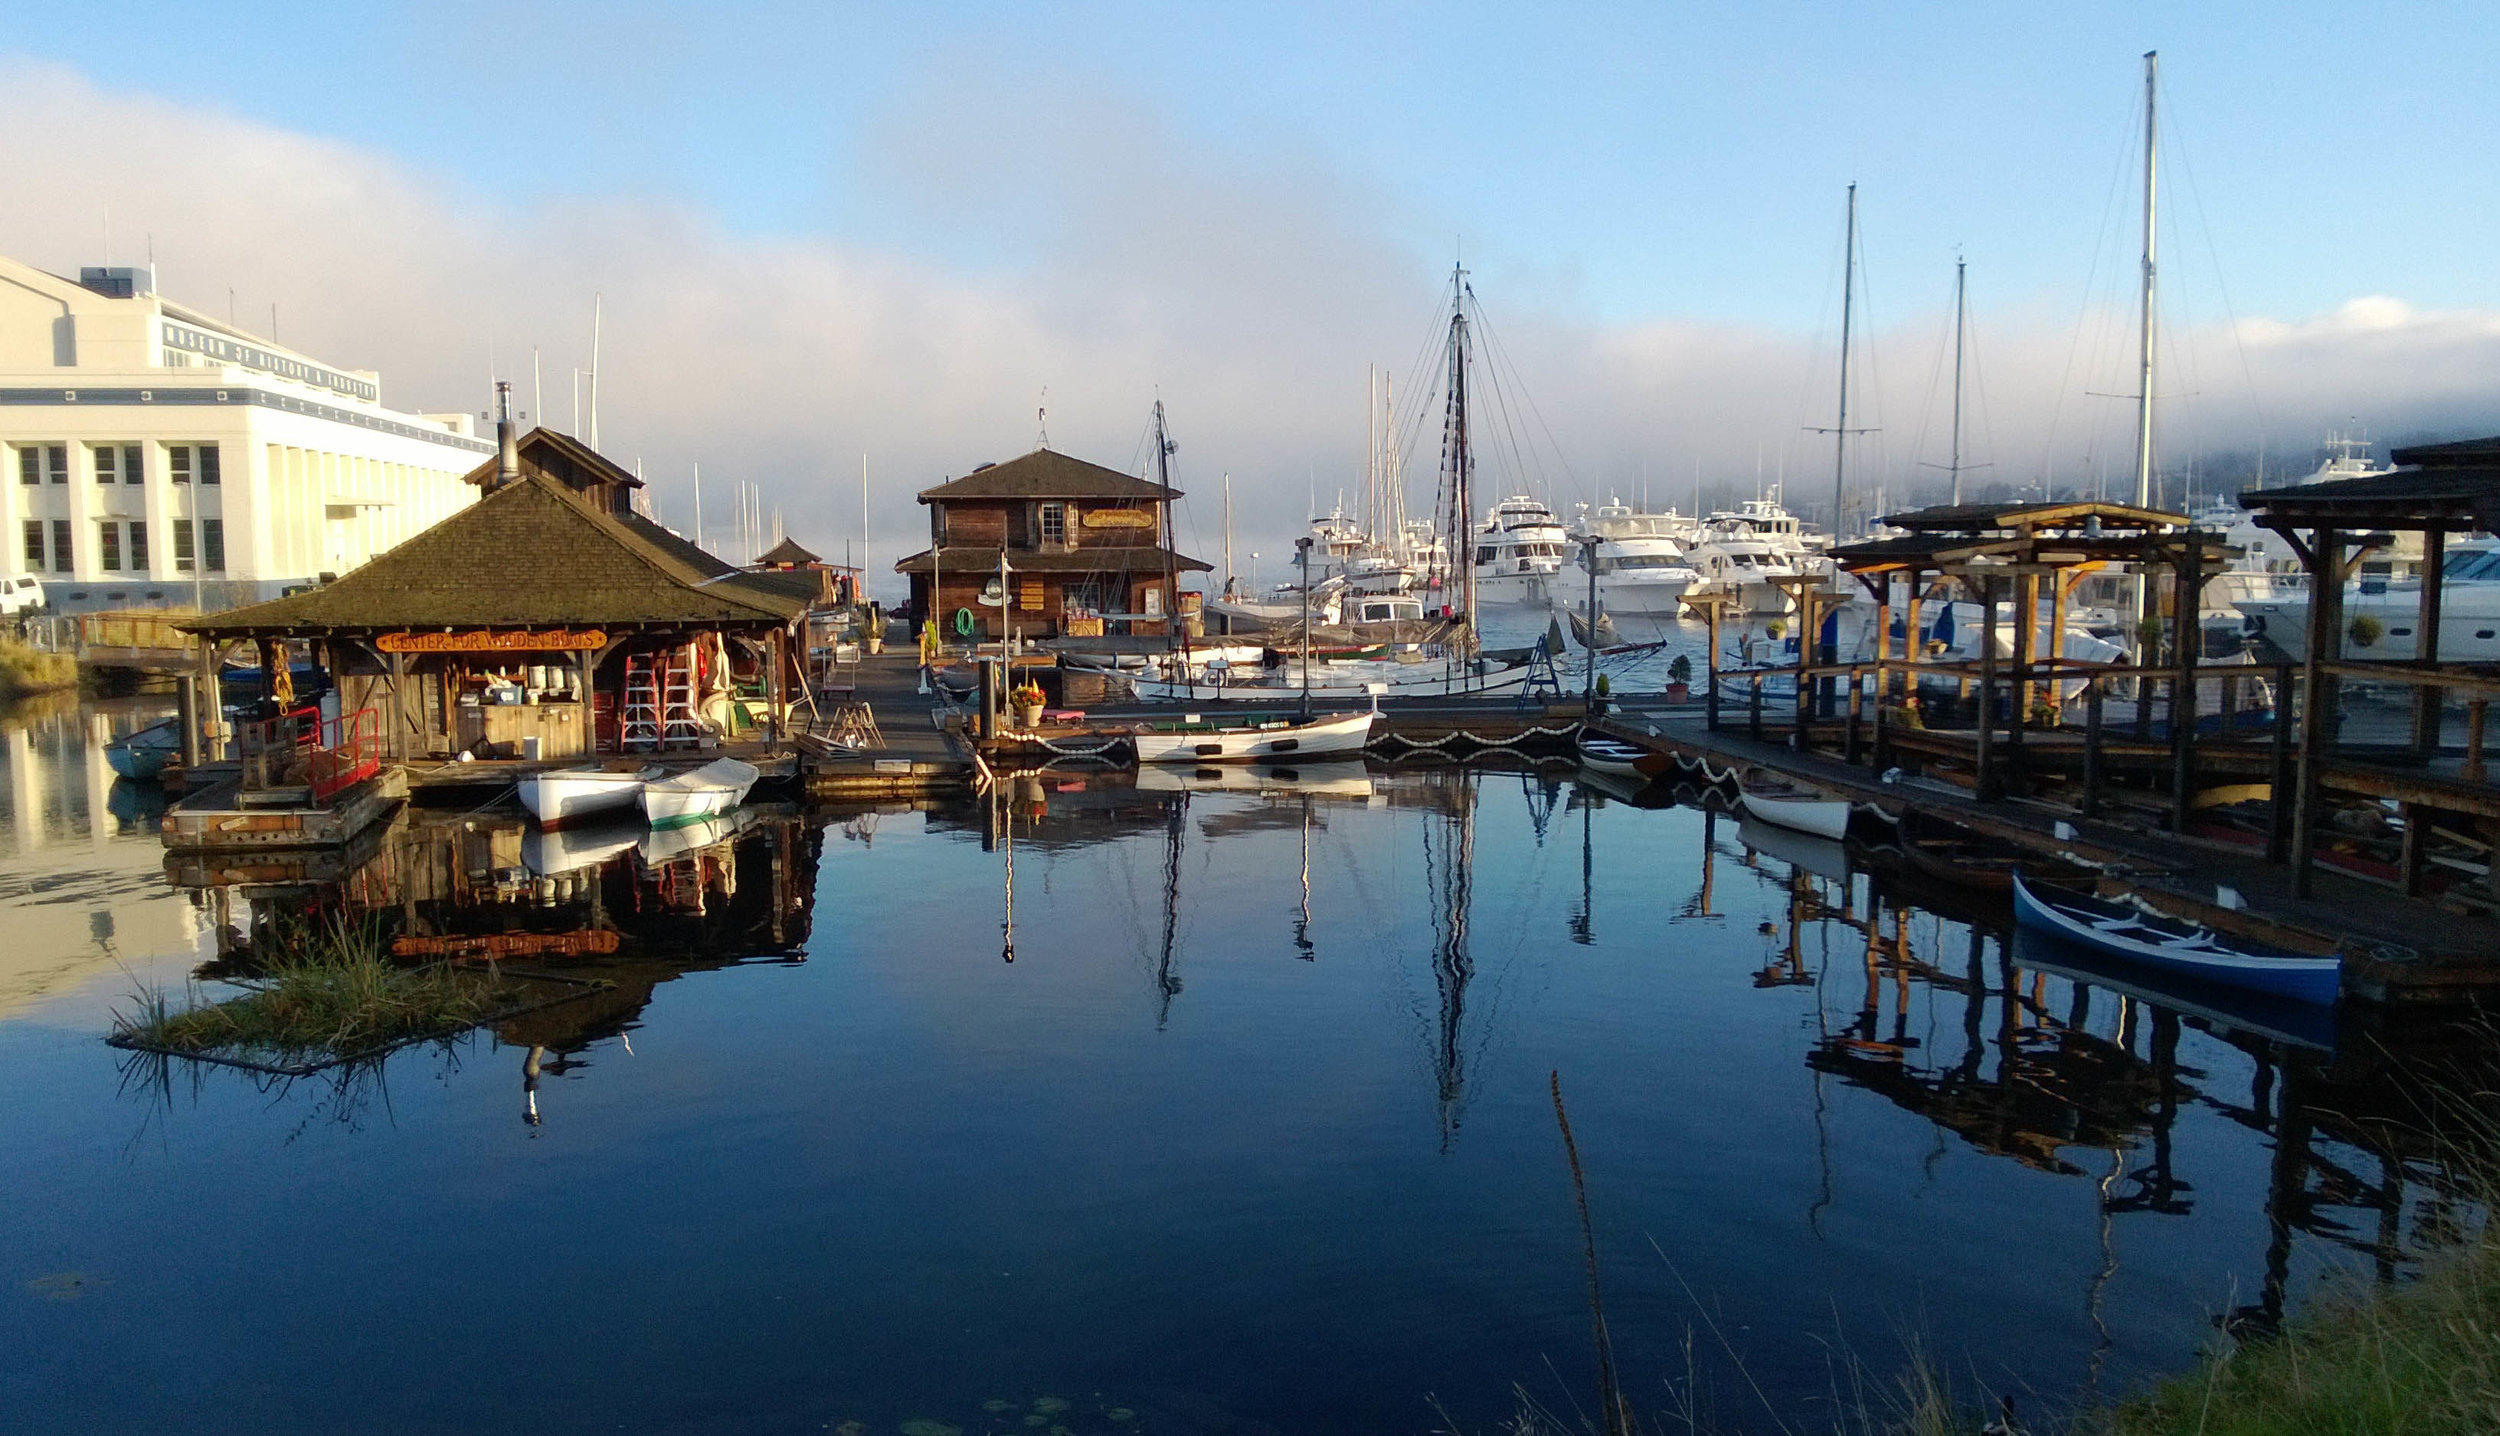 Panoramic Shot of The boathouse and boatshop from the lagoon area